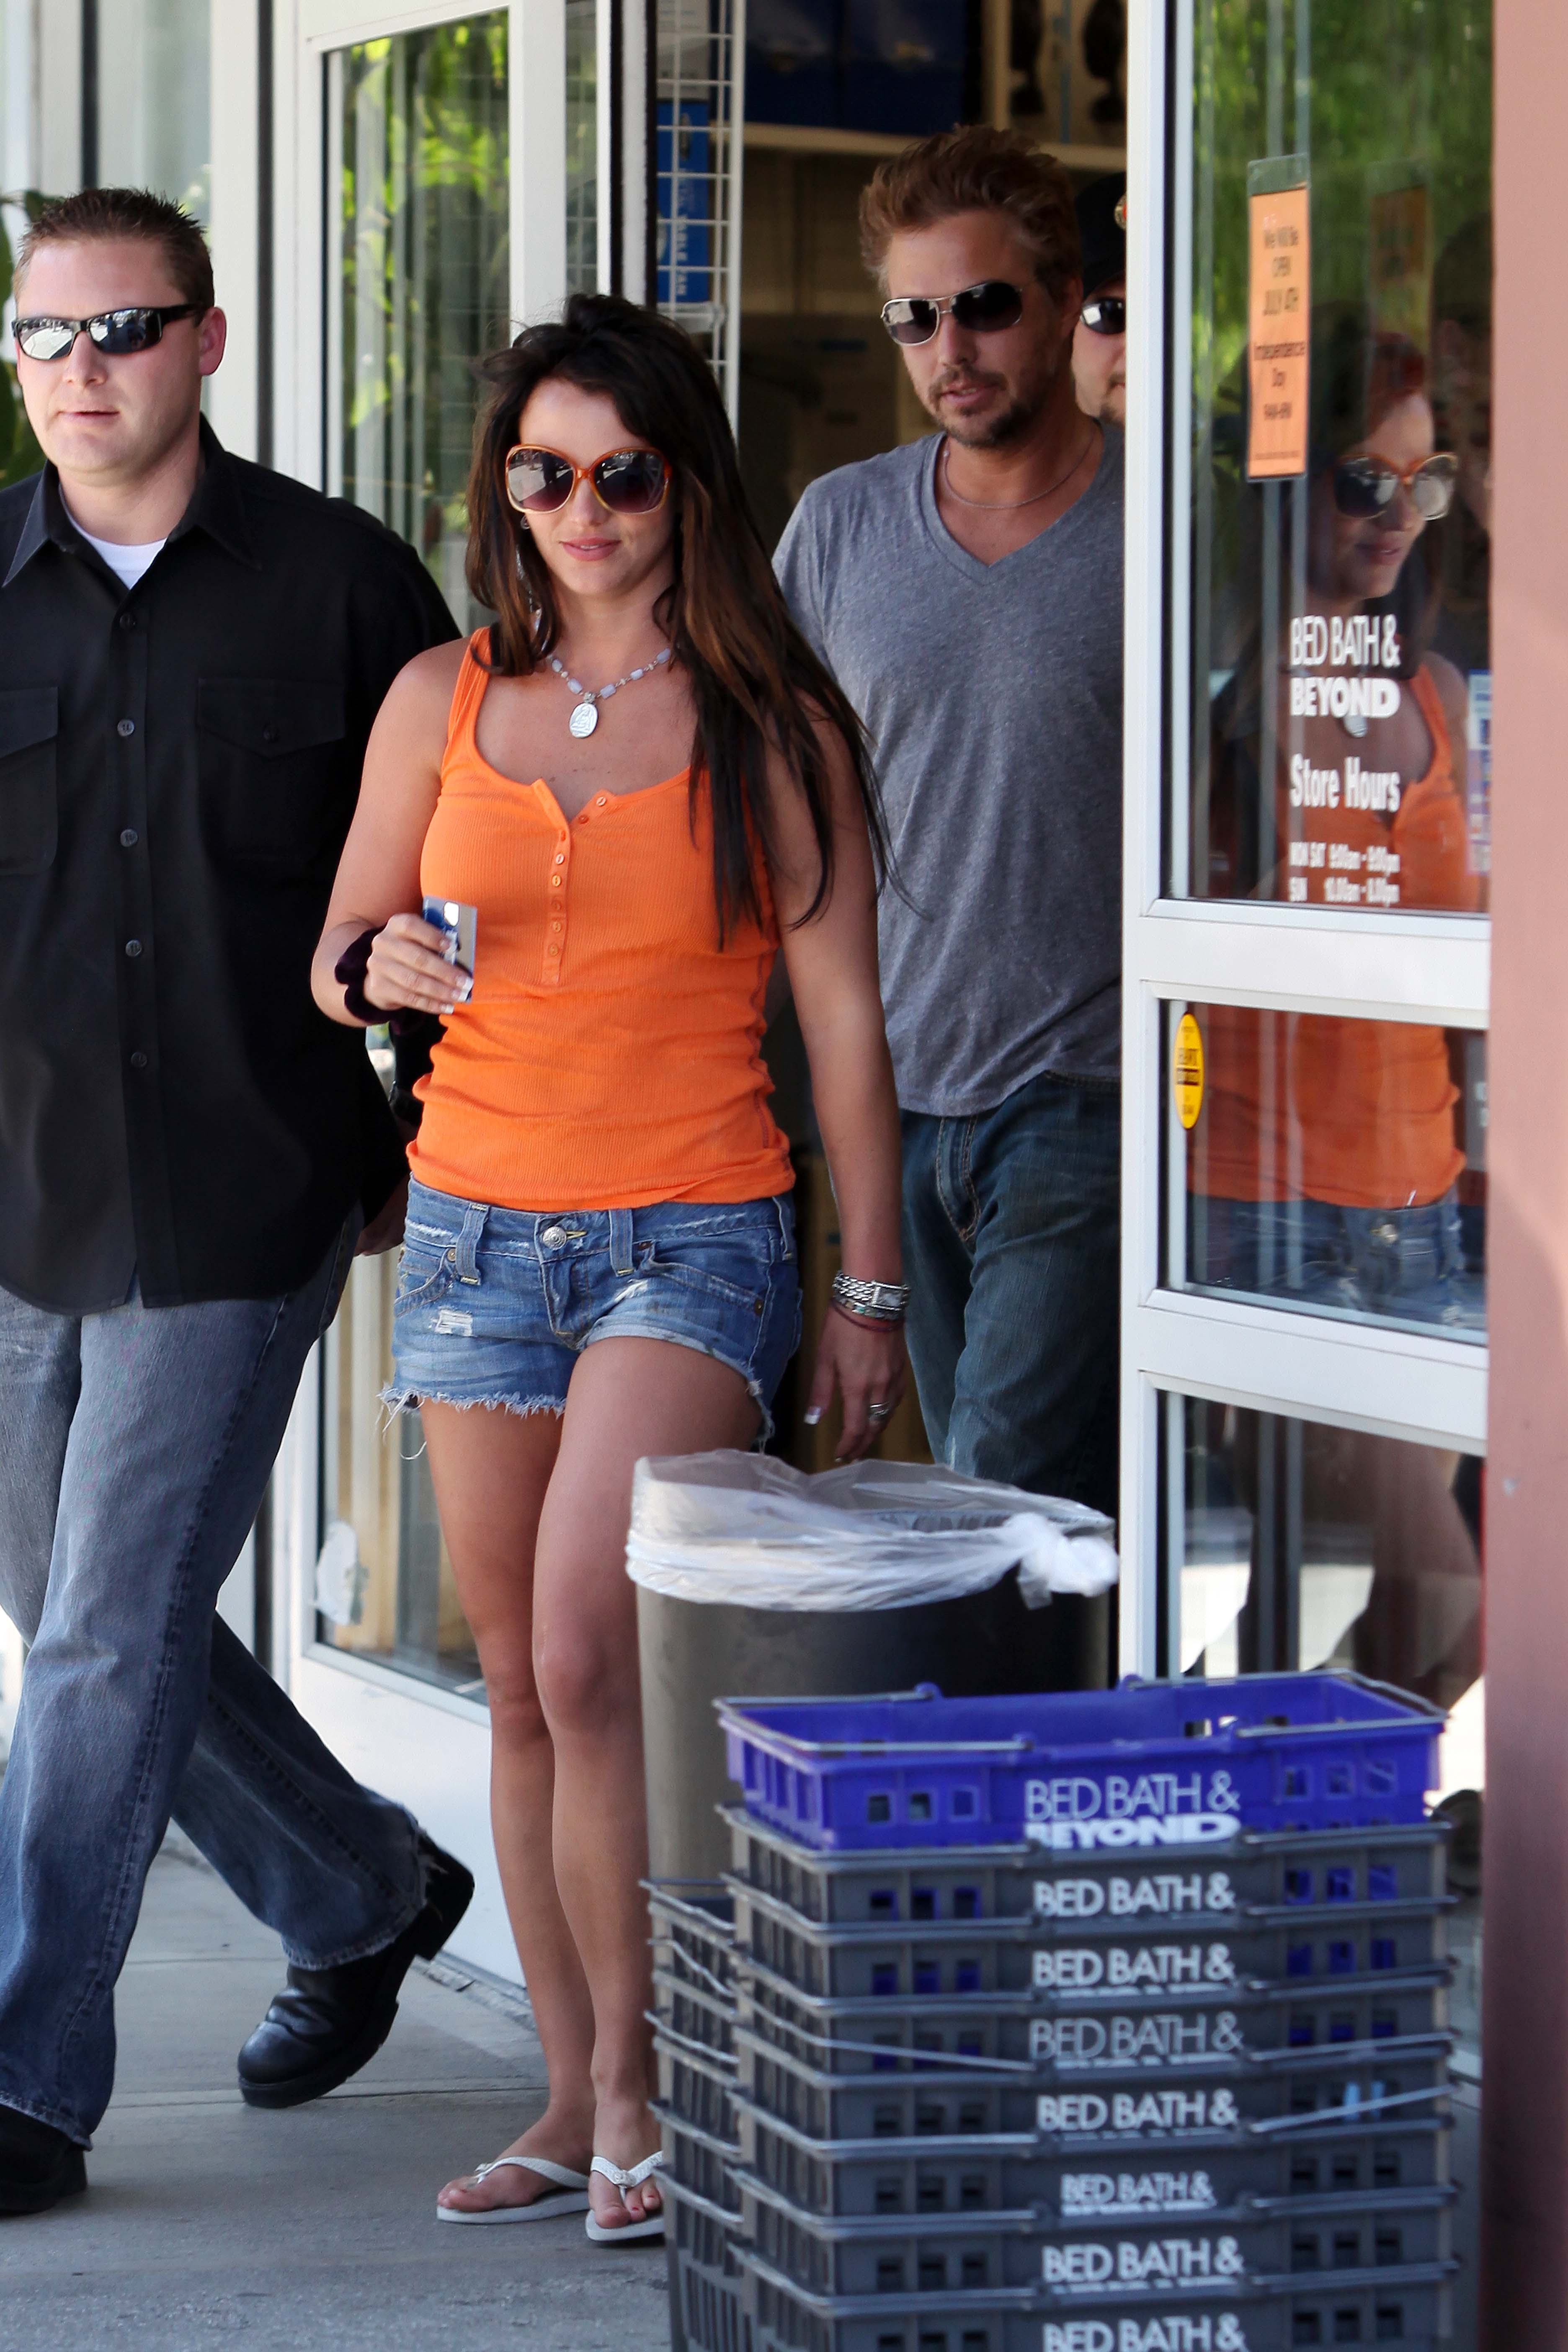 56048_celeb-city.org-The_Elder-Britney_Spears_2009-06-28_-_went_to_the_Bed_Bath_and_Beyond_9396_122_597lo.jpg